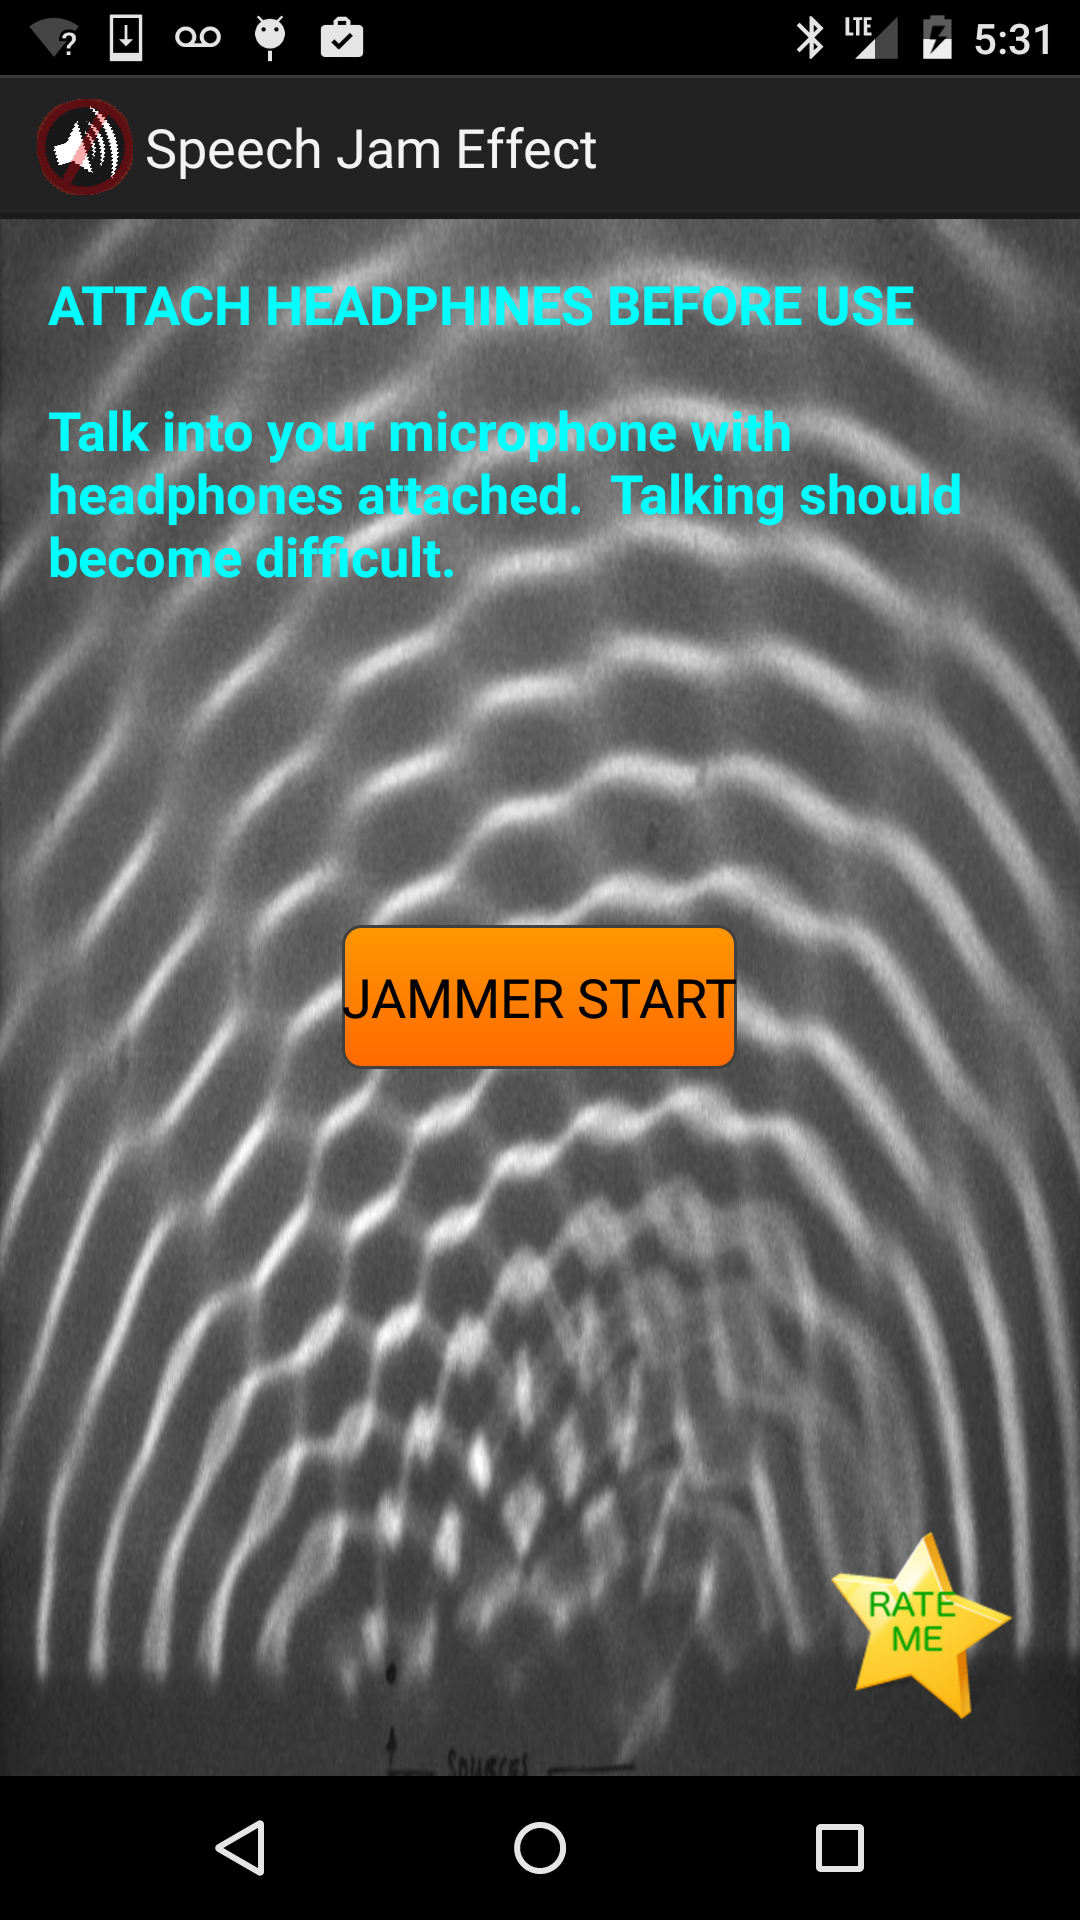 buy a speech jammer Find helpful customer reviews and review ratings for voice jammer at  see all  buying options  speech jammer gun brain confuser - stop speech bysean .